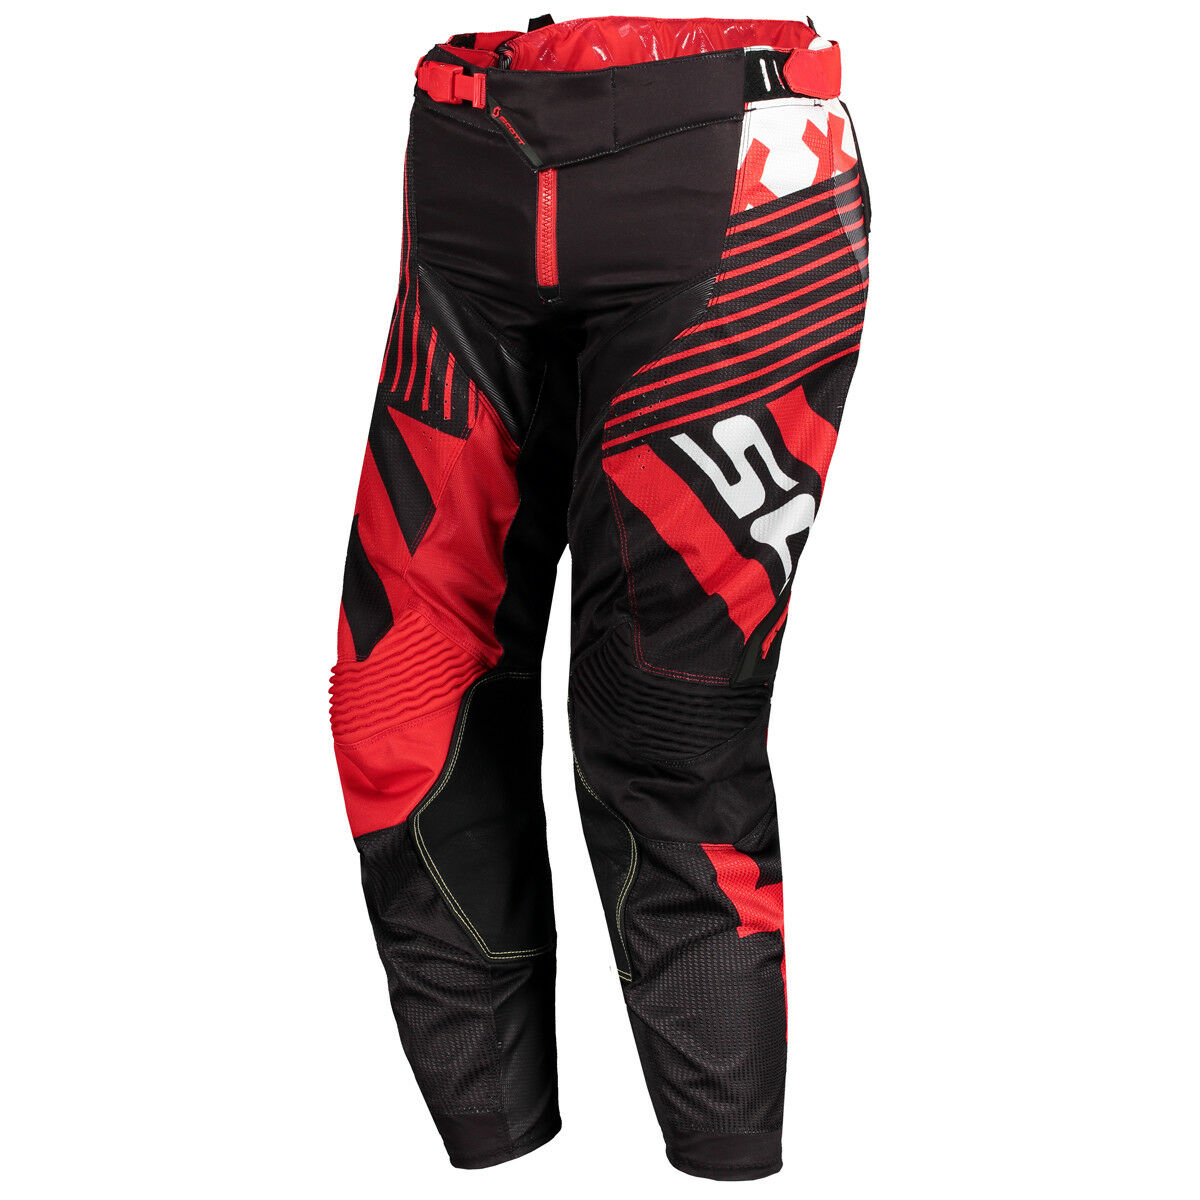 Scott 450 Patchwork MX Motocross   DH Fahrrad Hose black red 2018